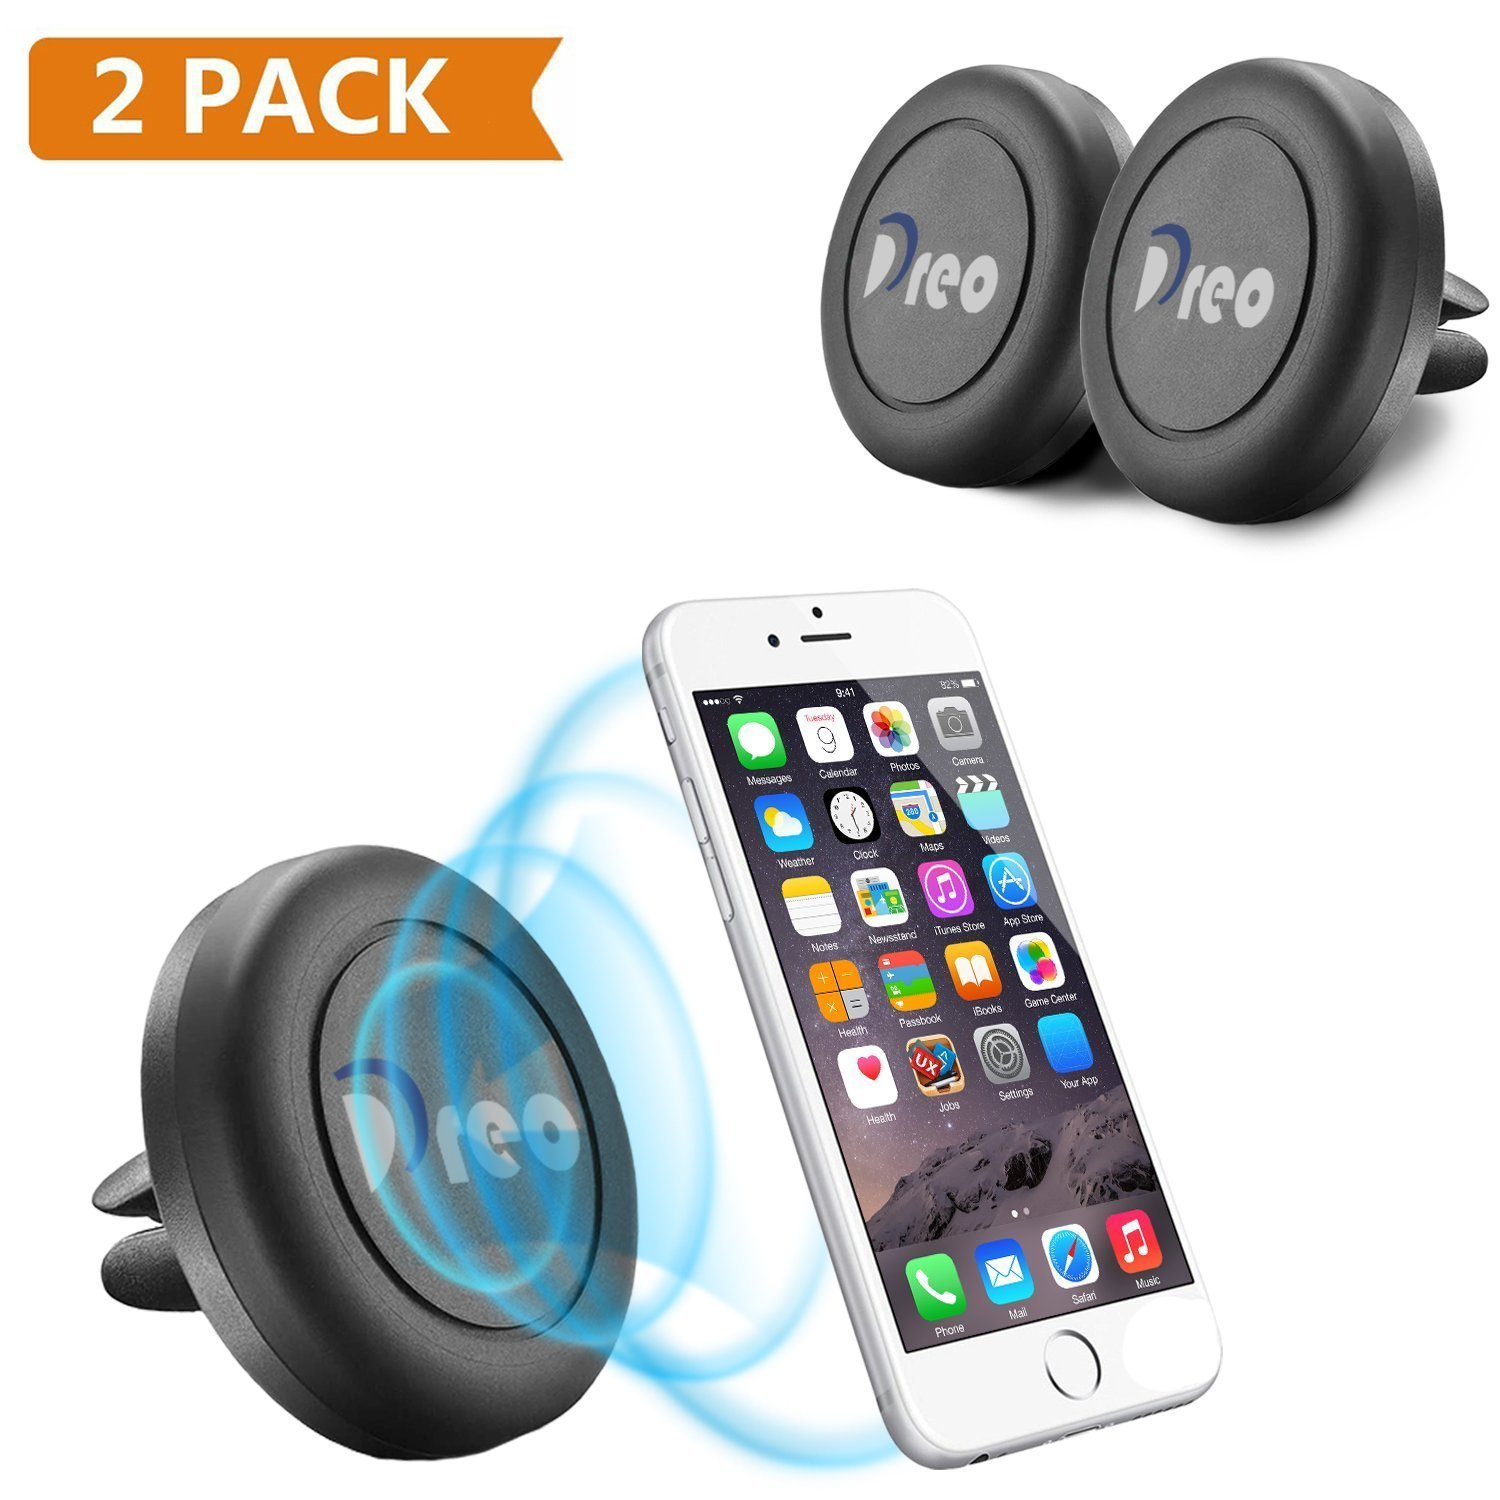 Amazon com dreo universal air vent magnetic car mount phone holder 2 pack black cell phones accessories